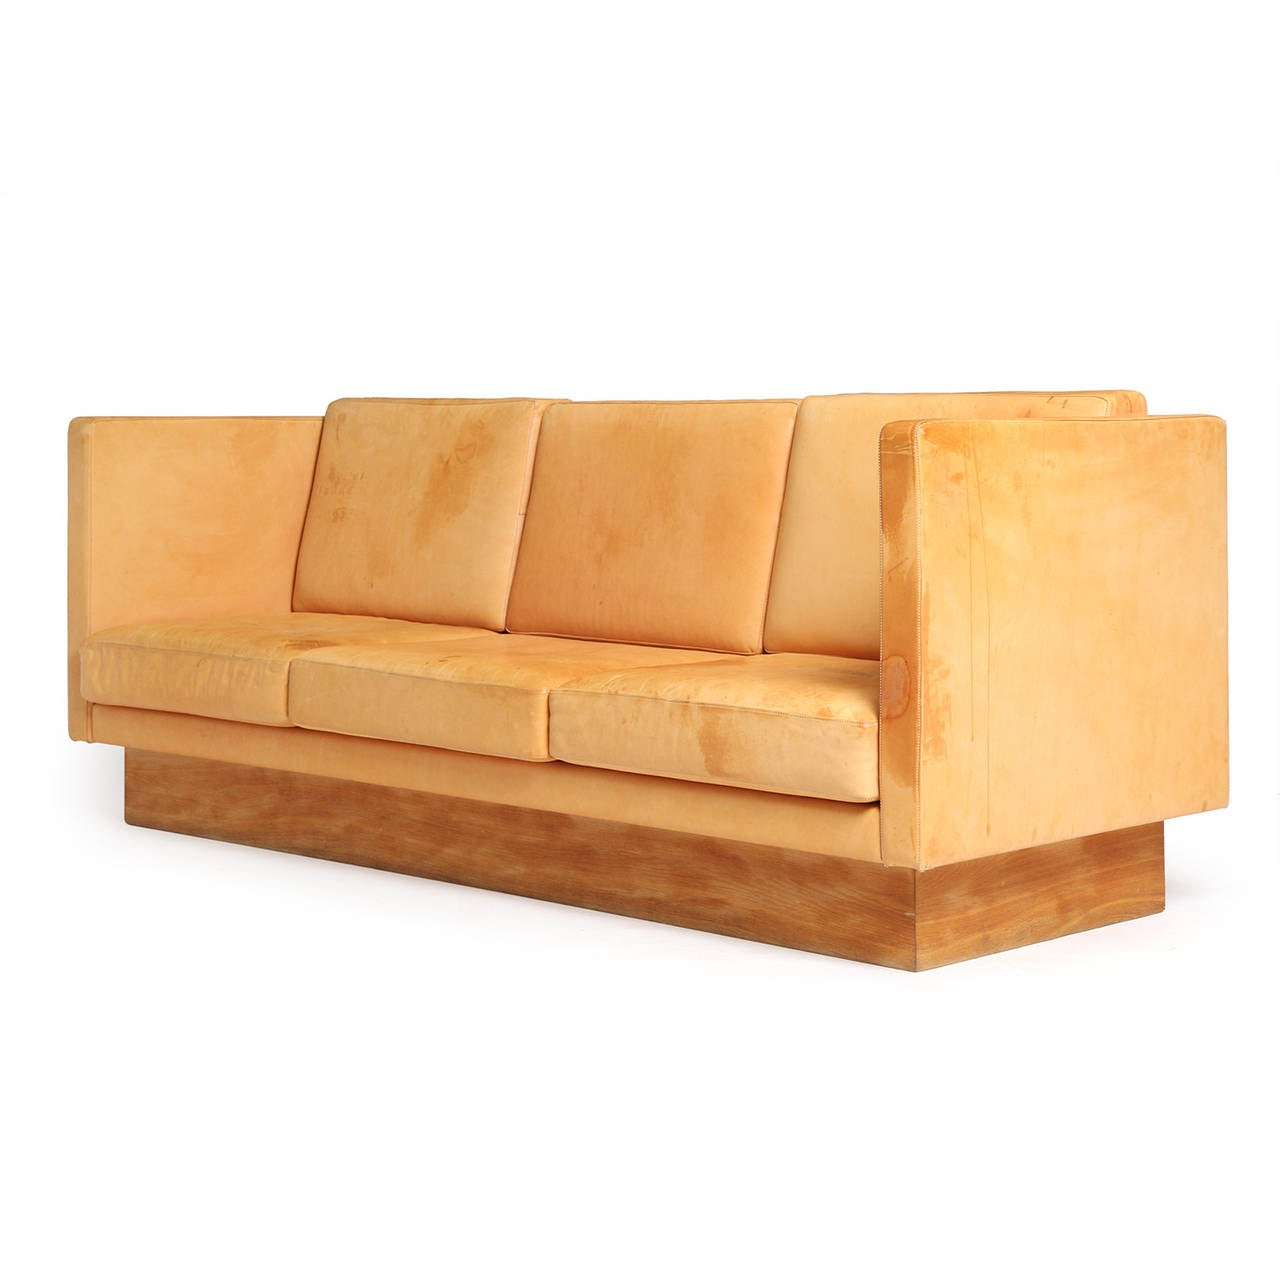 Natural Leather High Back Sofa For Sale At 1stdibs